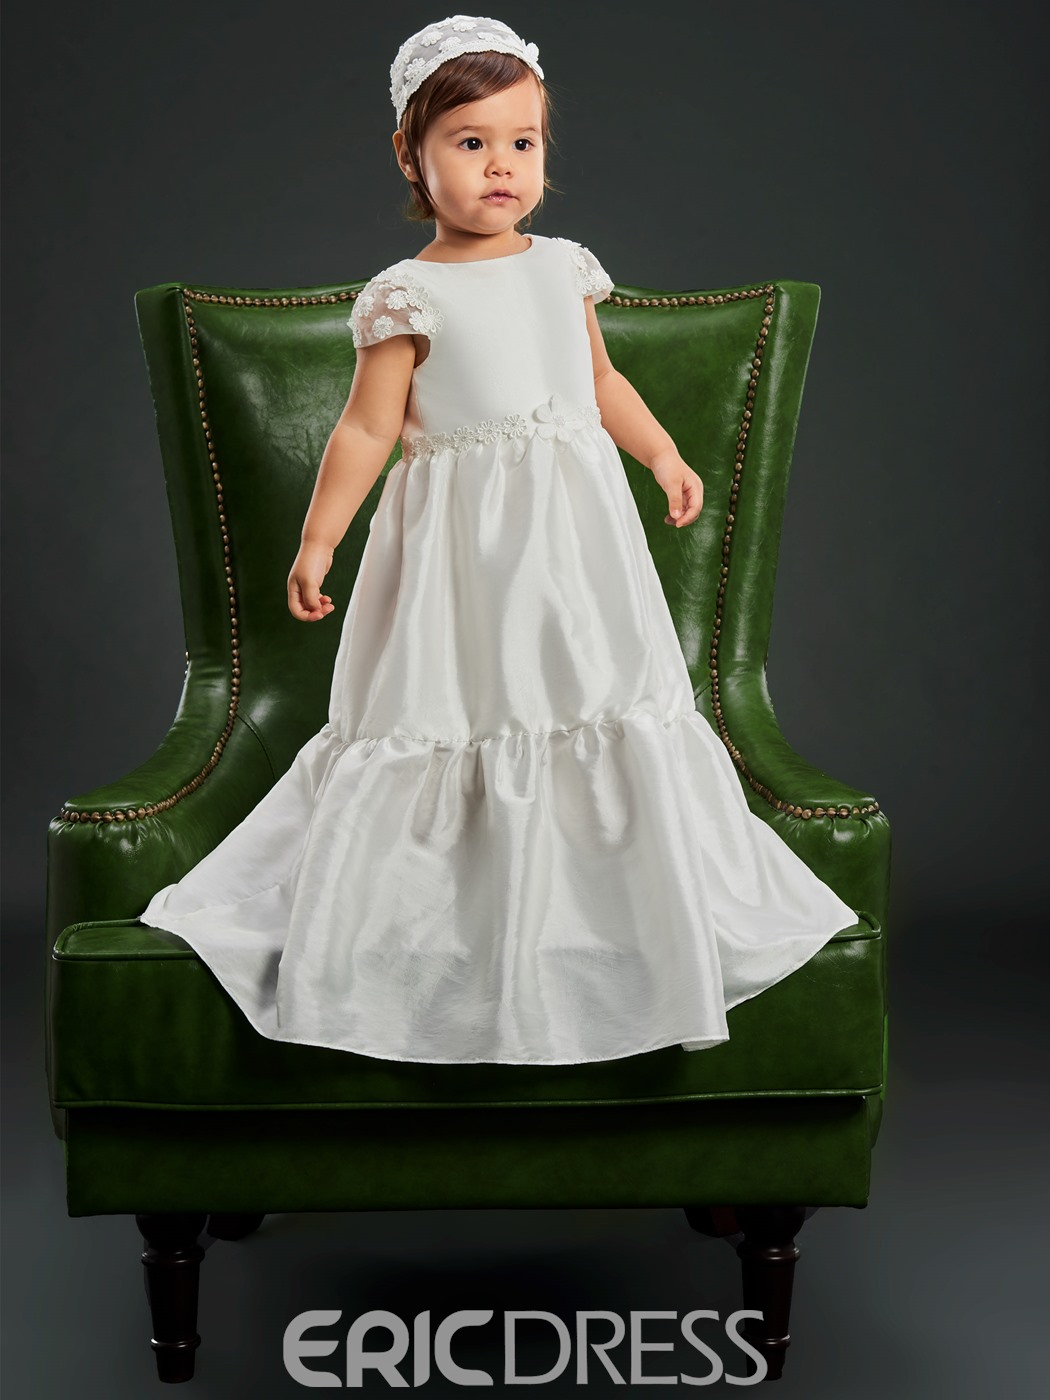 Ericdress Baby Girls Simple Christening Gown for Baptism with Hat ...